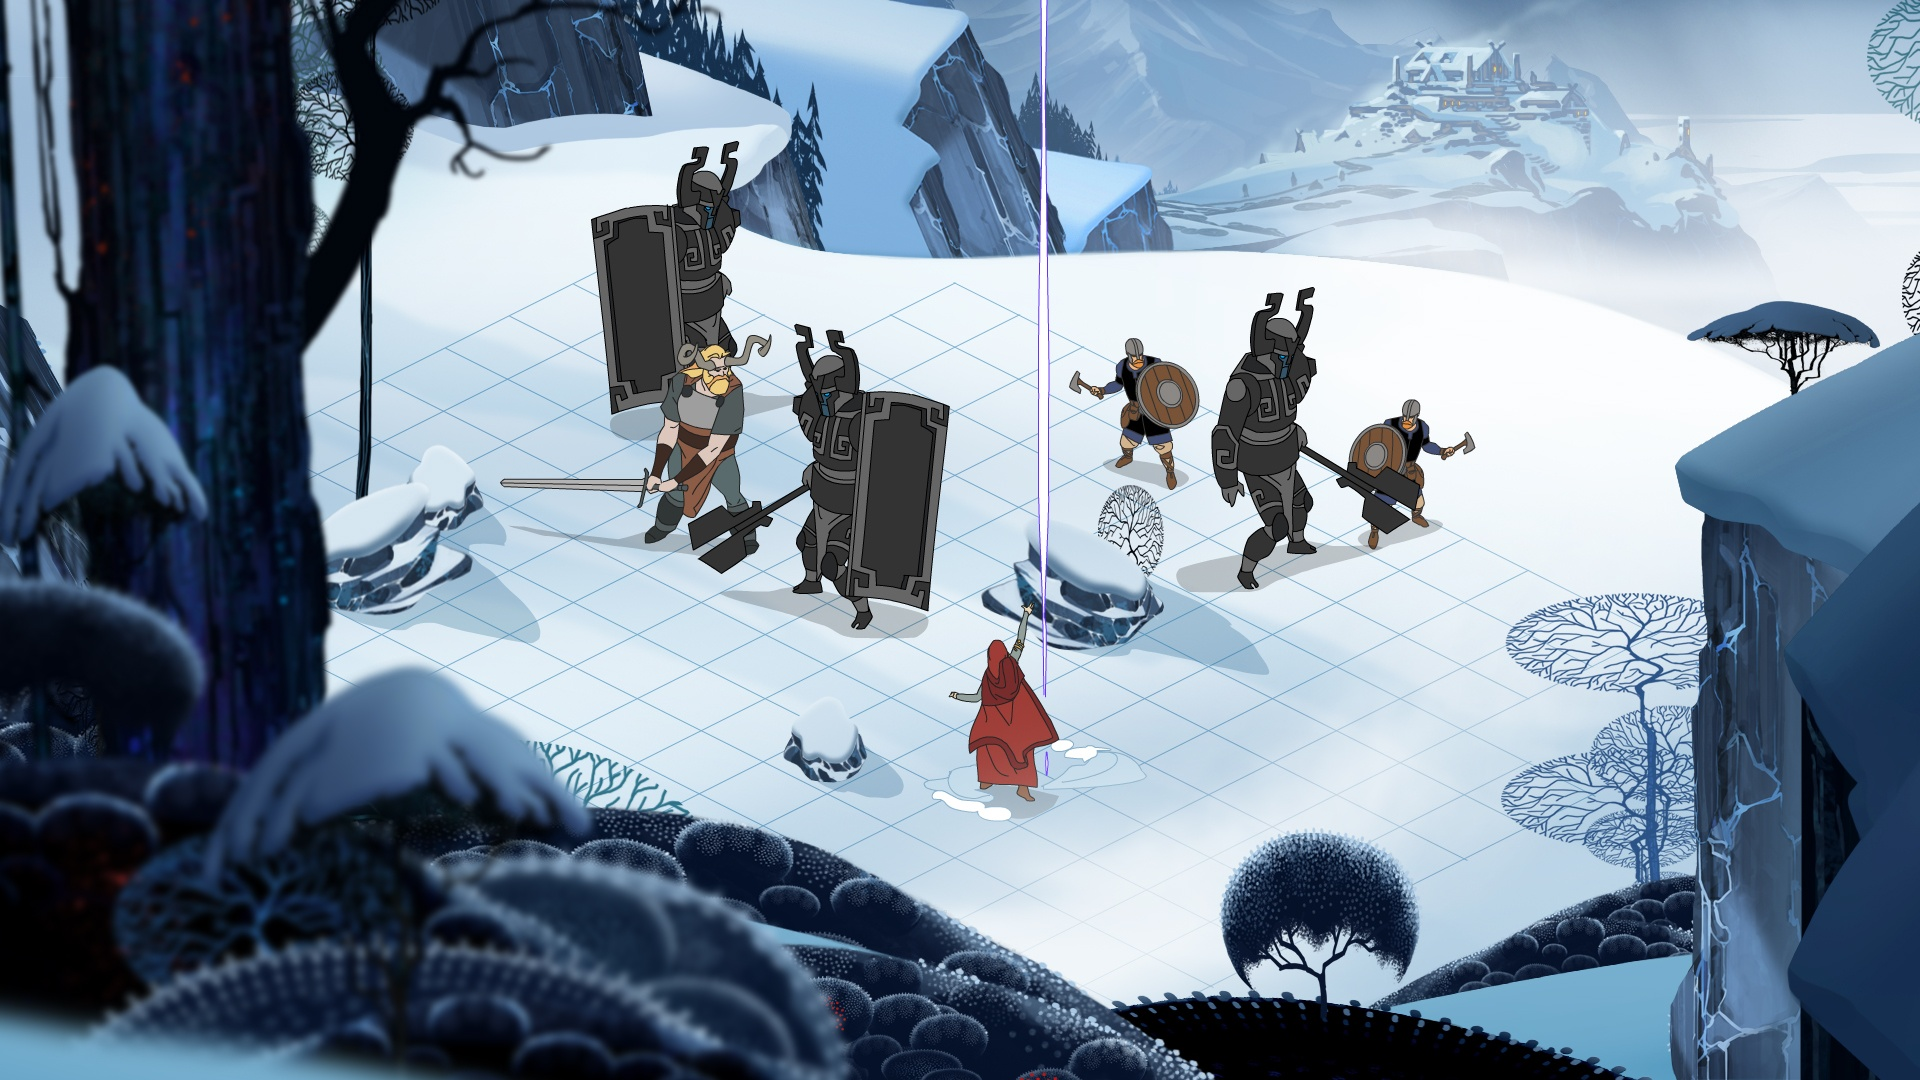 http://www.destructoid.com/ul/268853-review-the-banner-saga/7-noscale.jpg